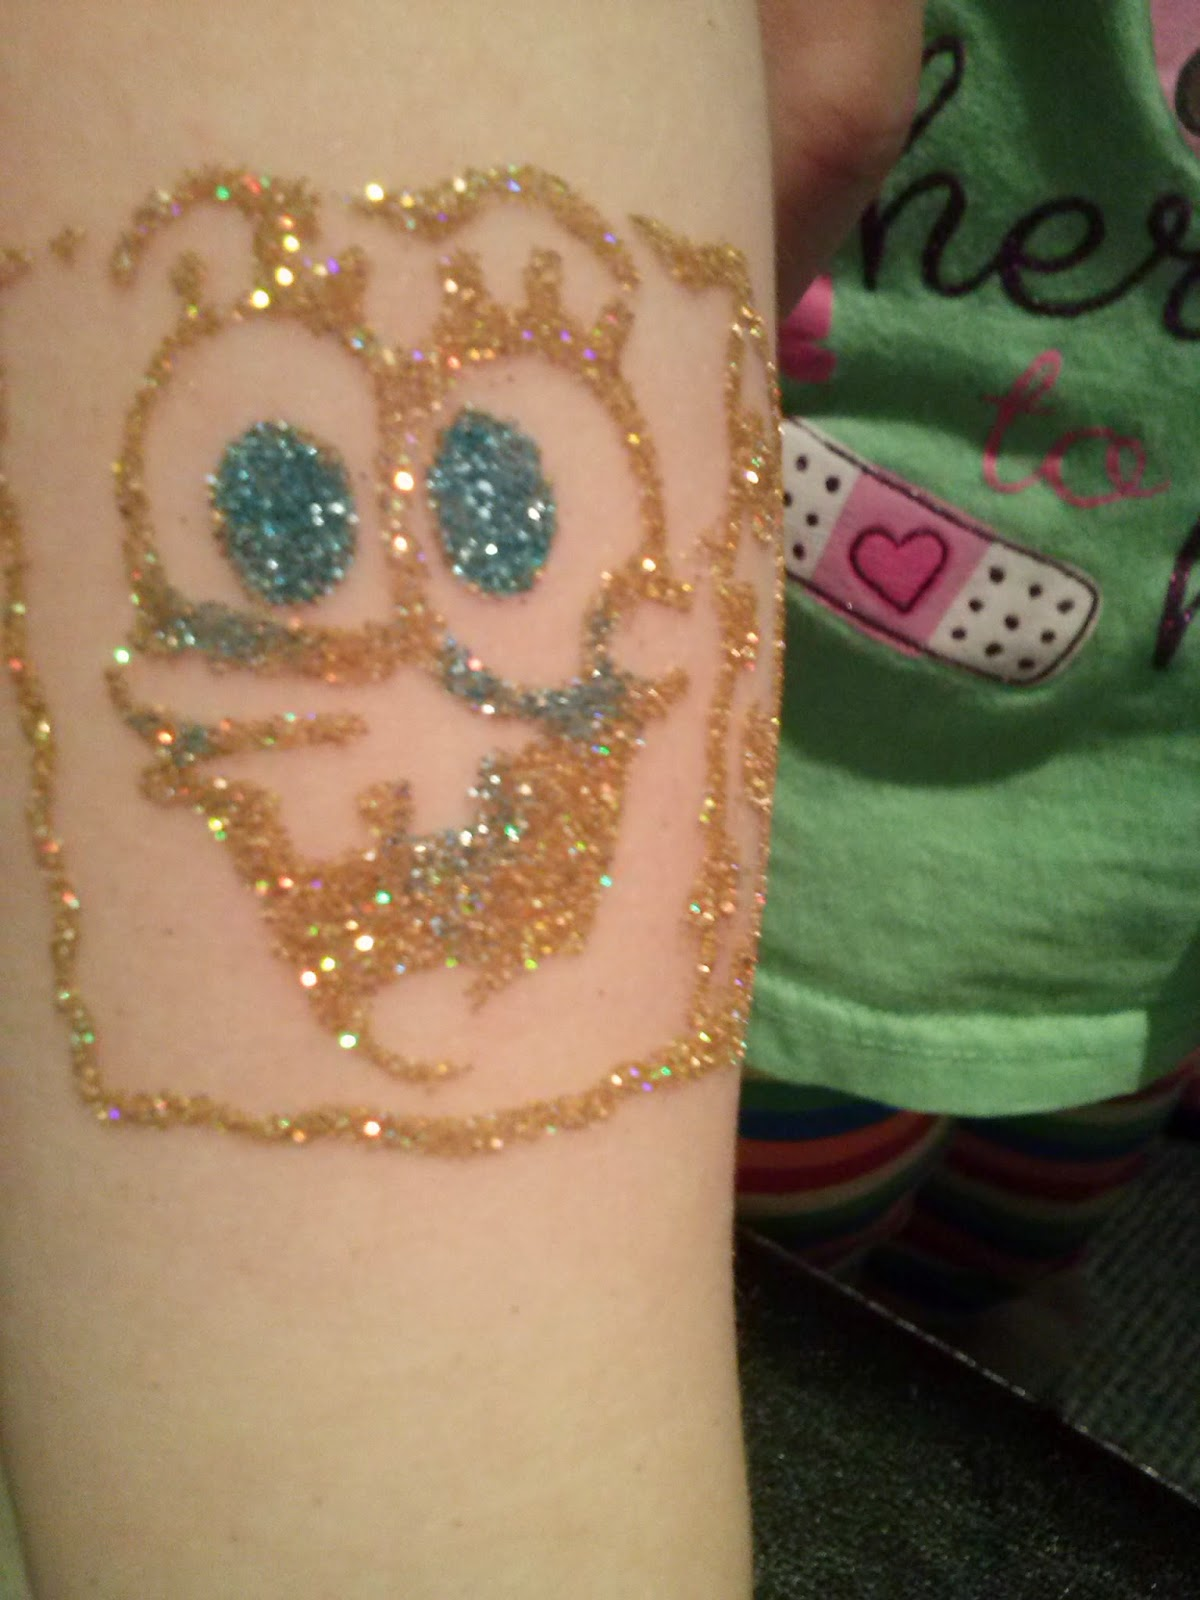 Spongebob Glitter Tattoo